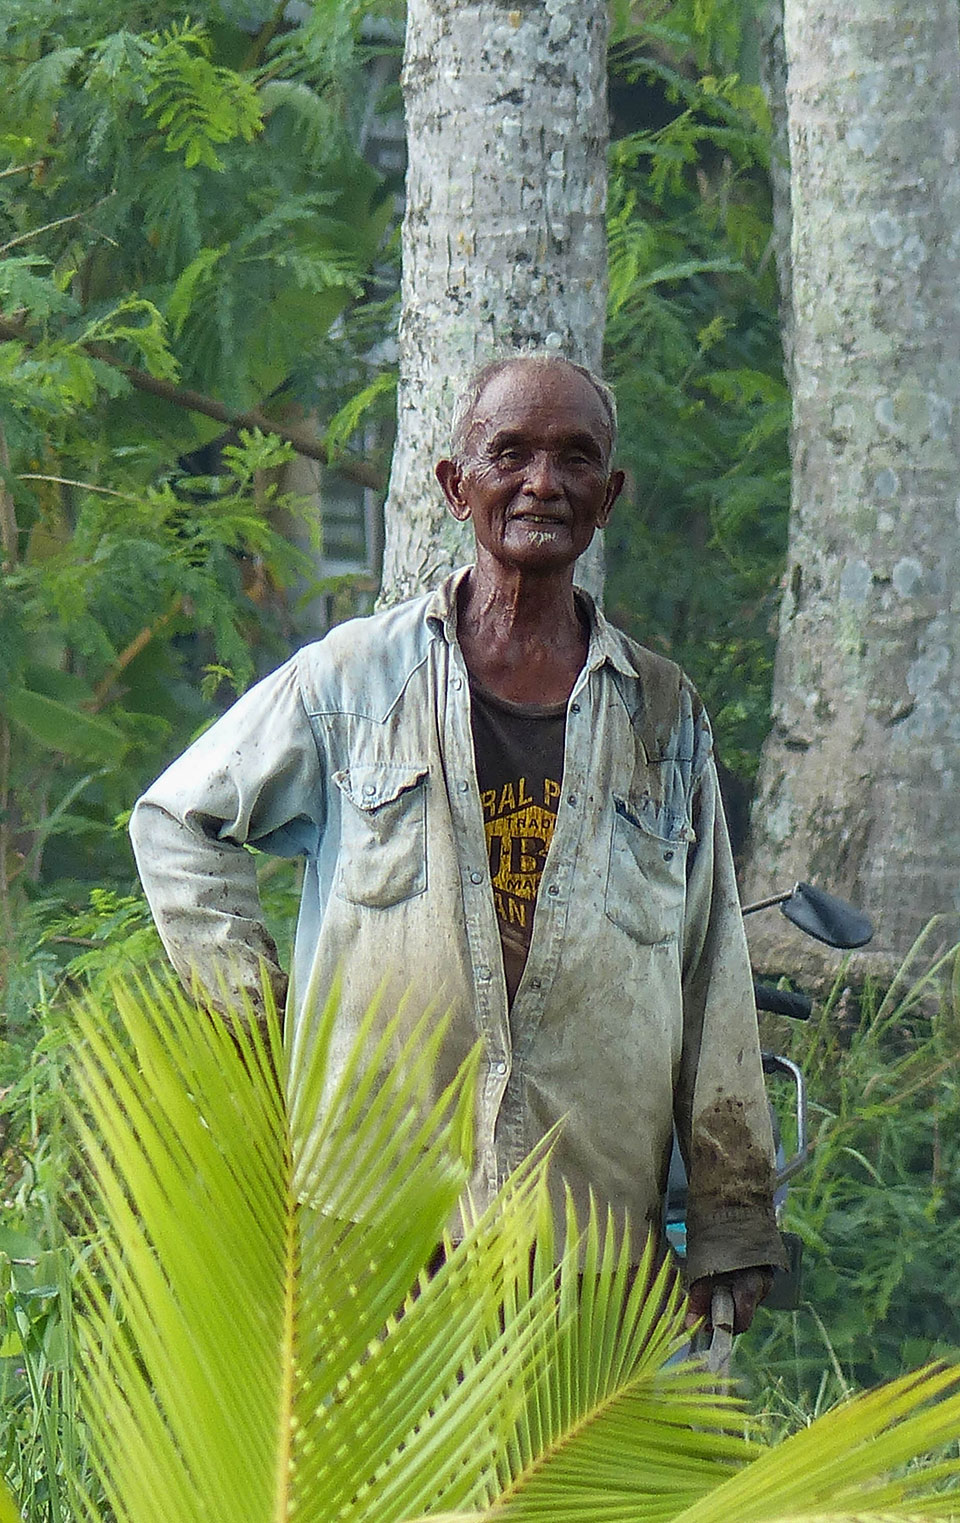 7-1-Bali-People-FriendlyMan